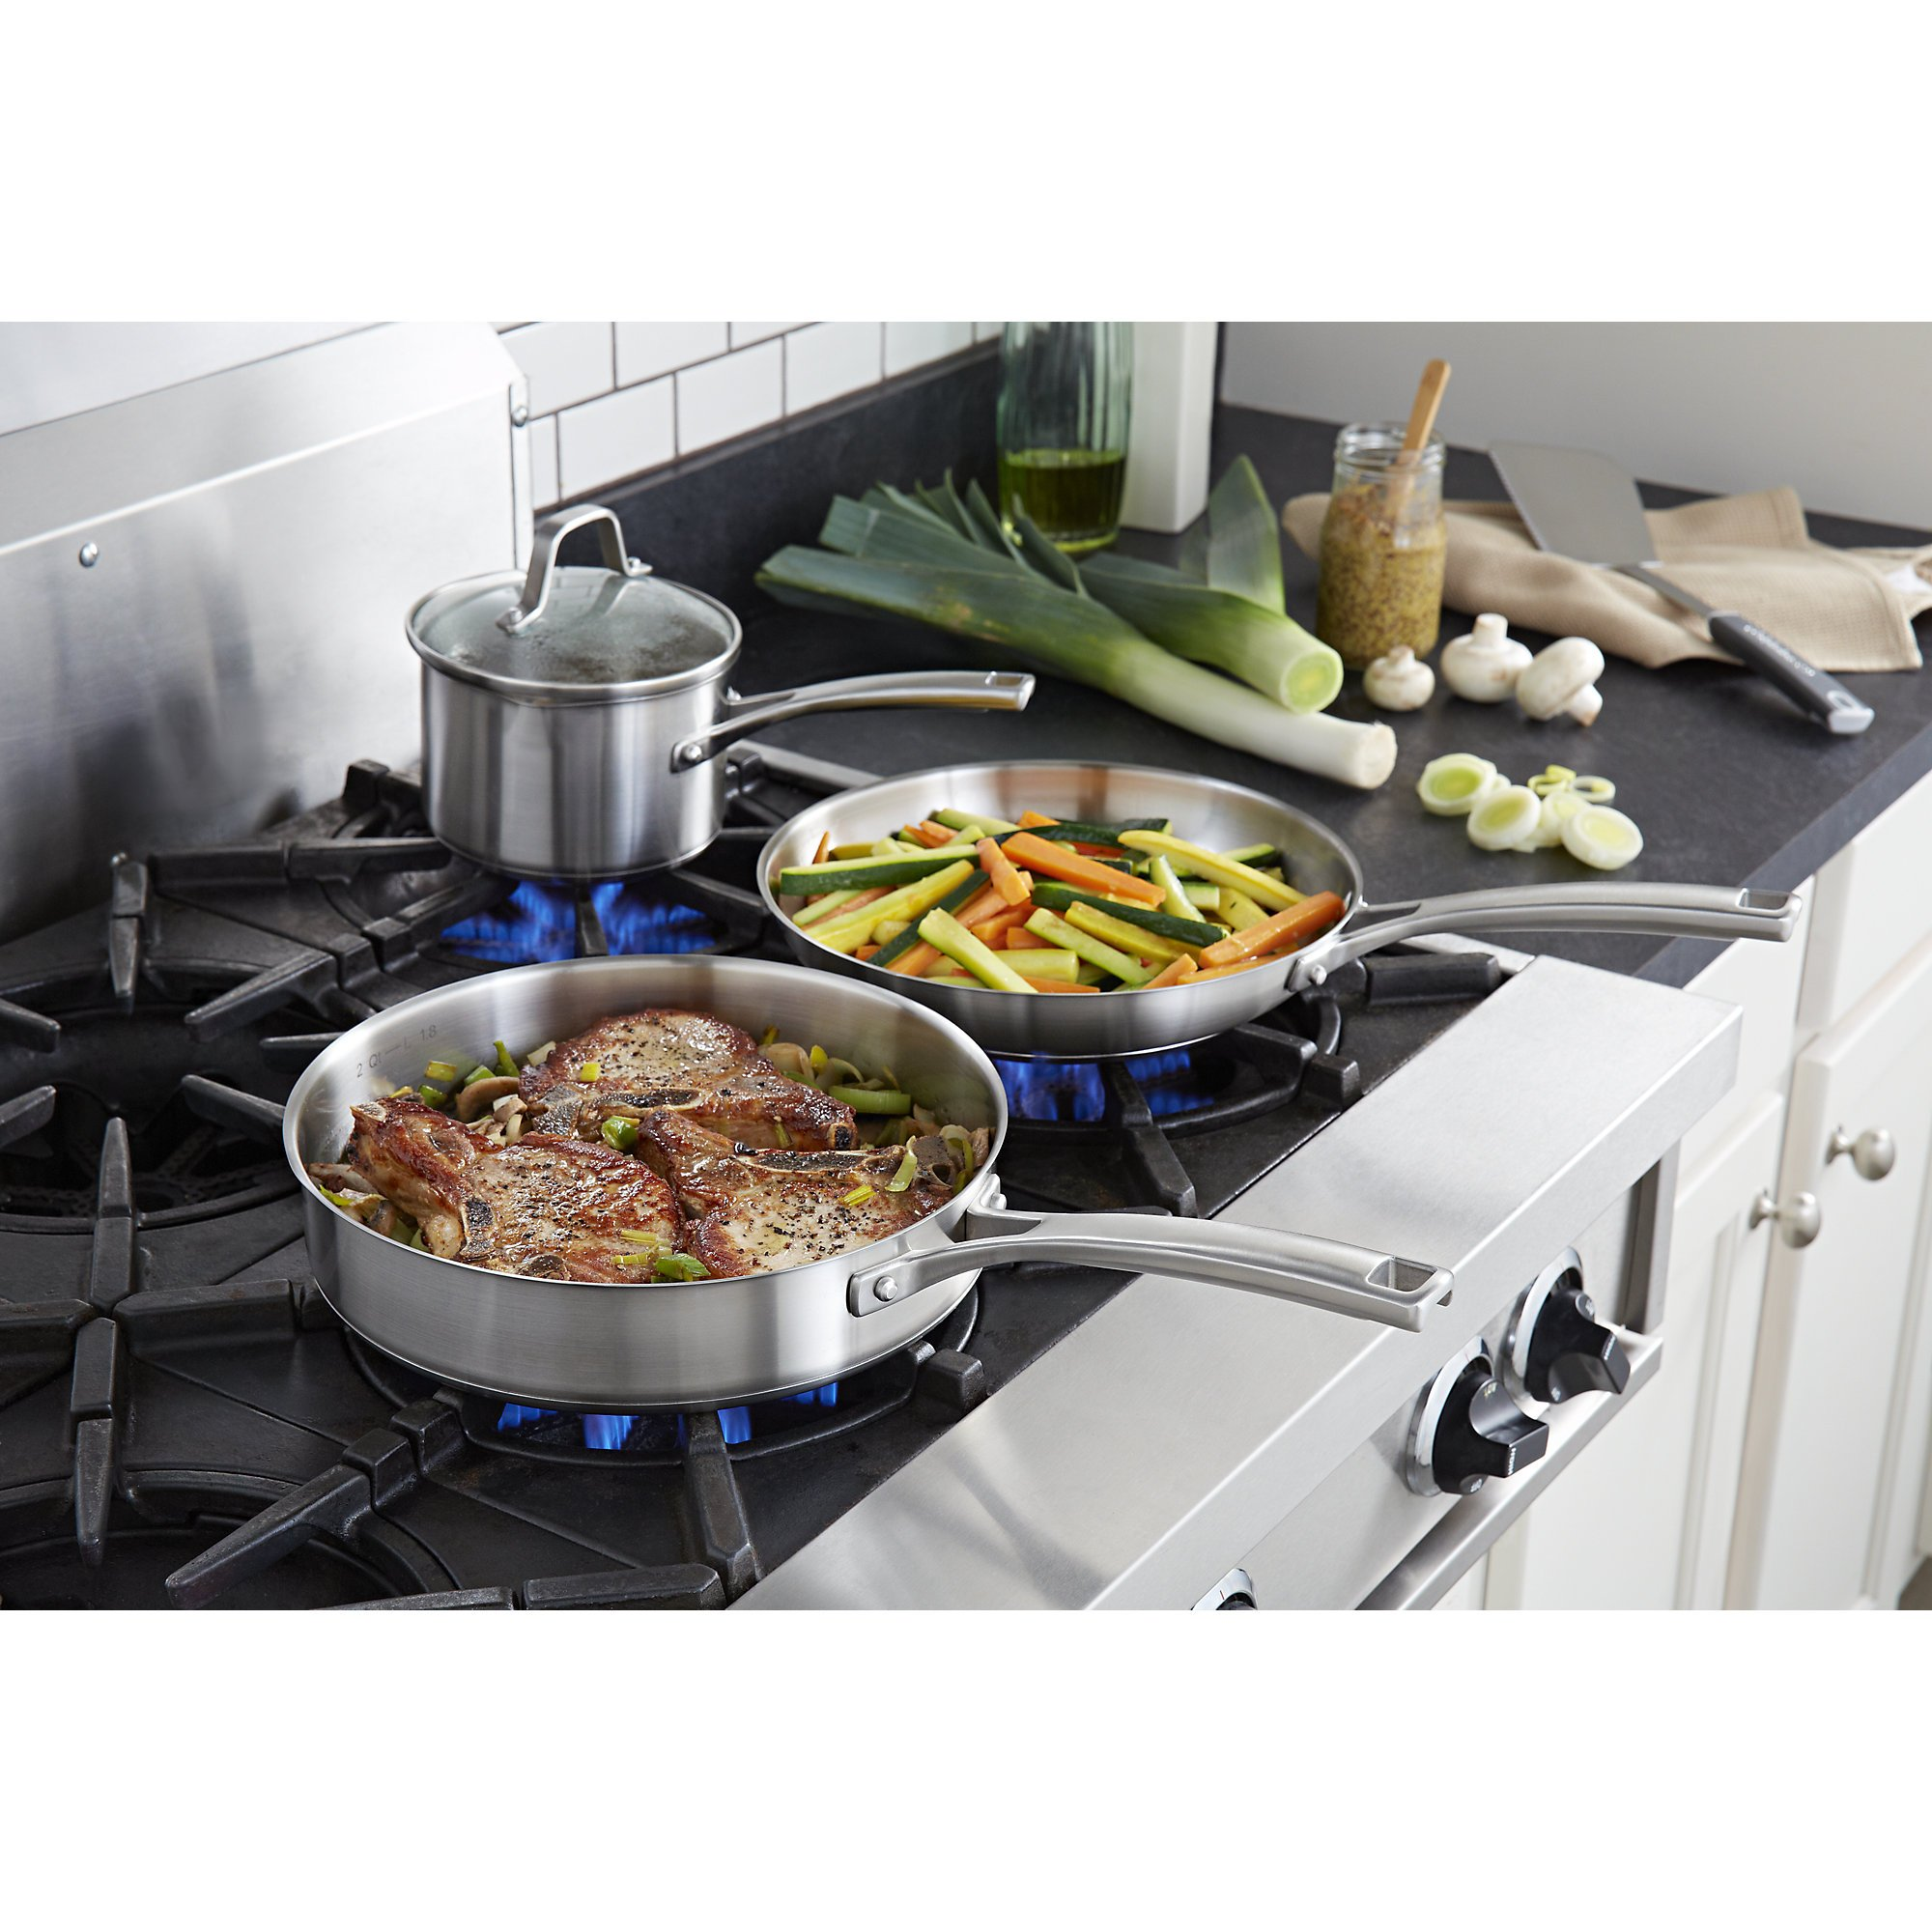 Calphalon Classic Stainless Steel Cookware Set, 10-Piece by Calphalon (Image #3)